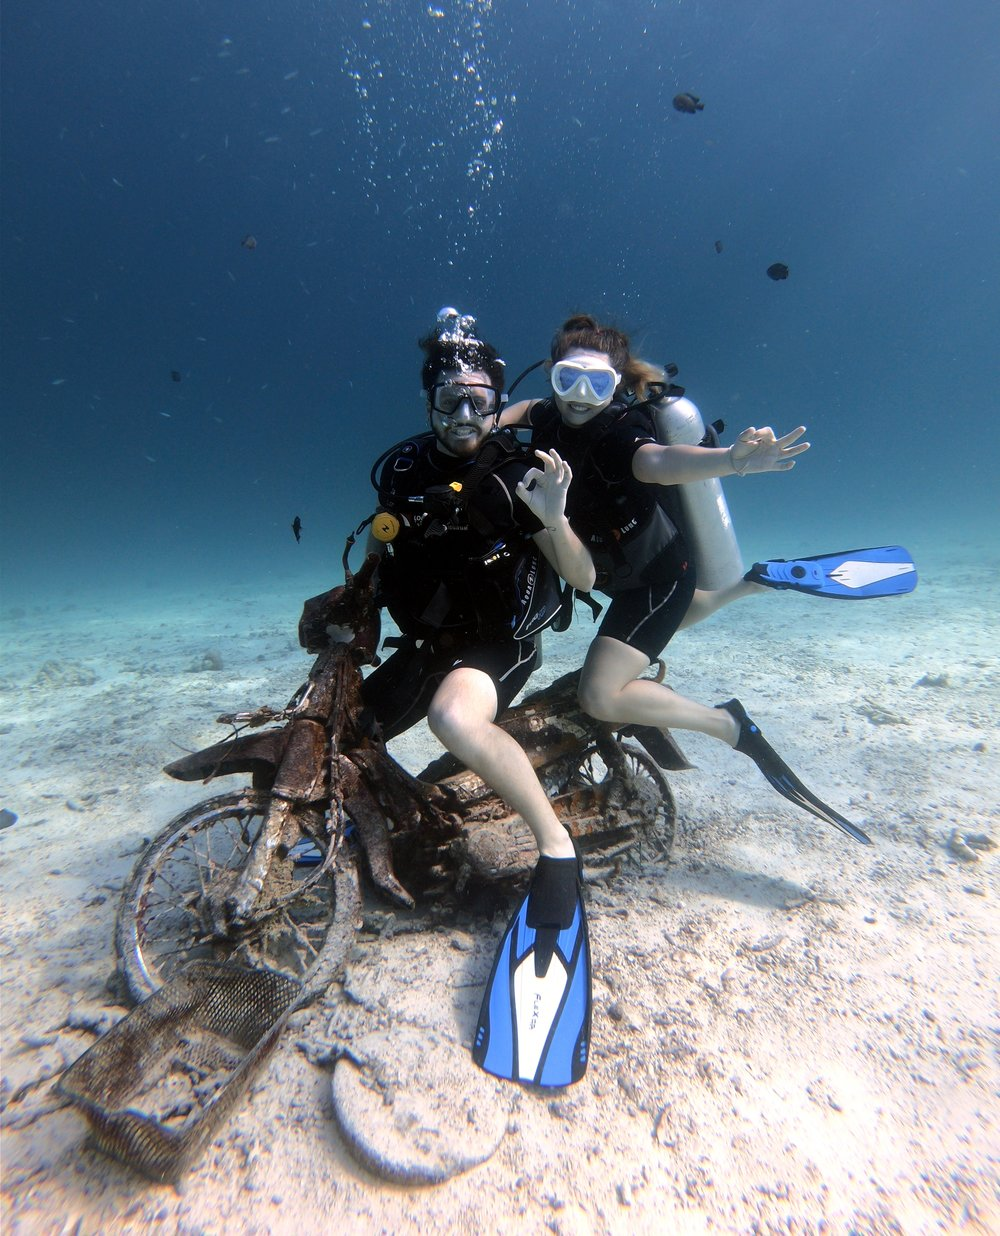 Taylor has been riding motorcycles along the seafloor in Thailand